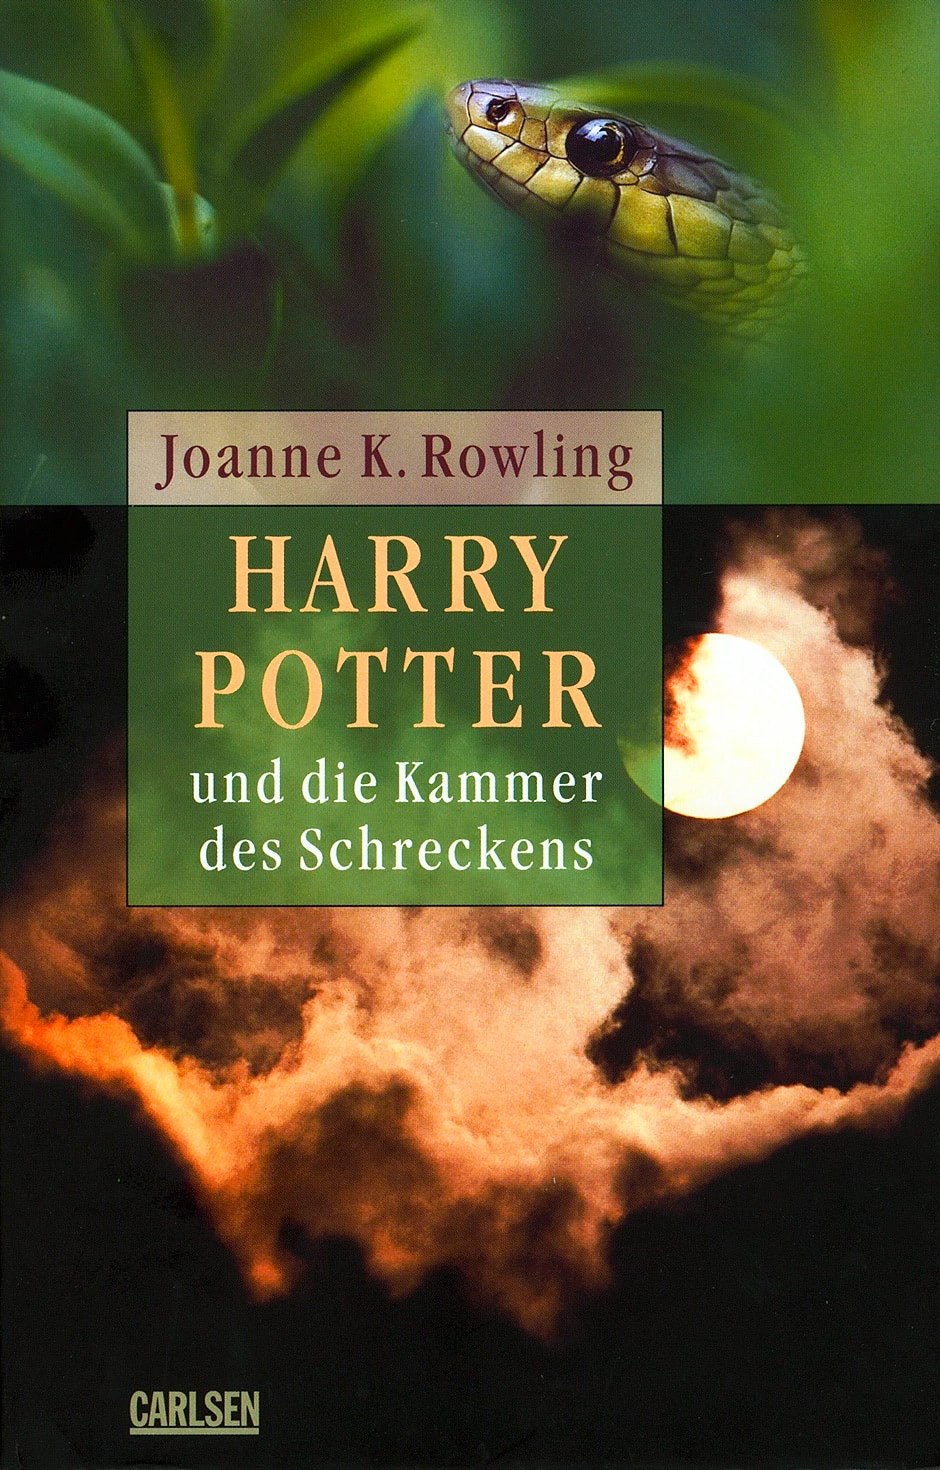 'Chamber of Secrets' German adult edition